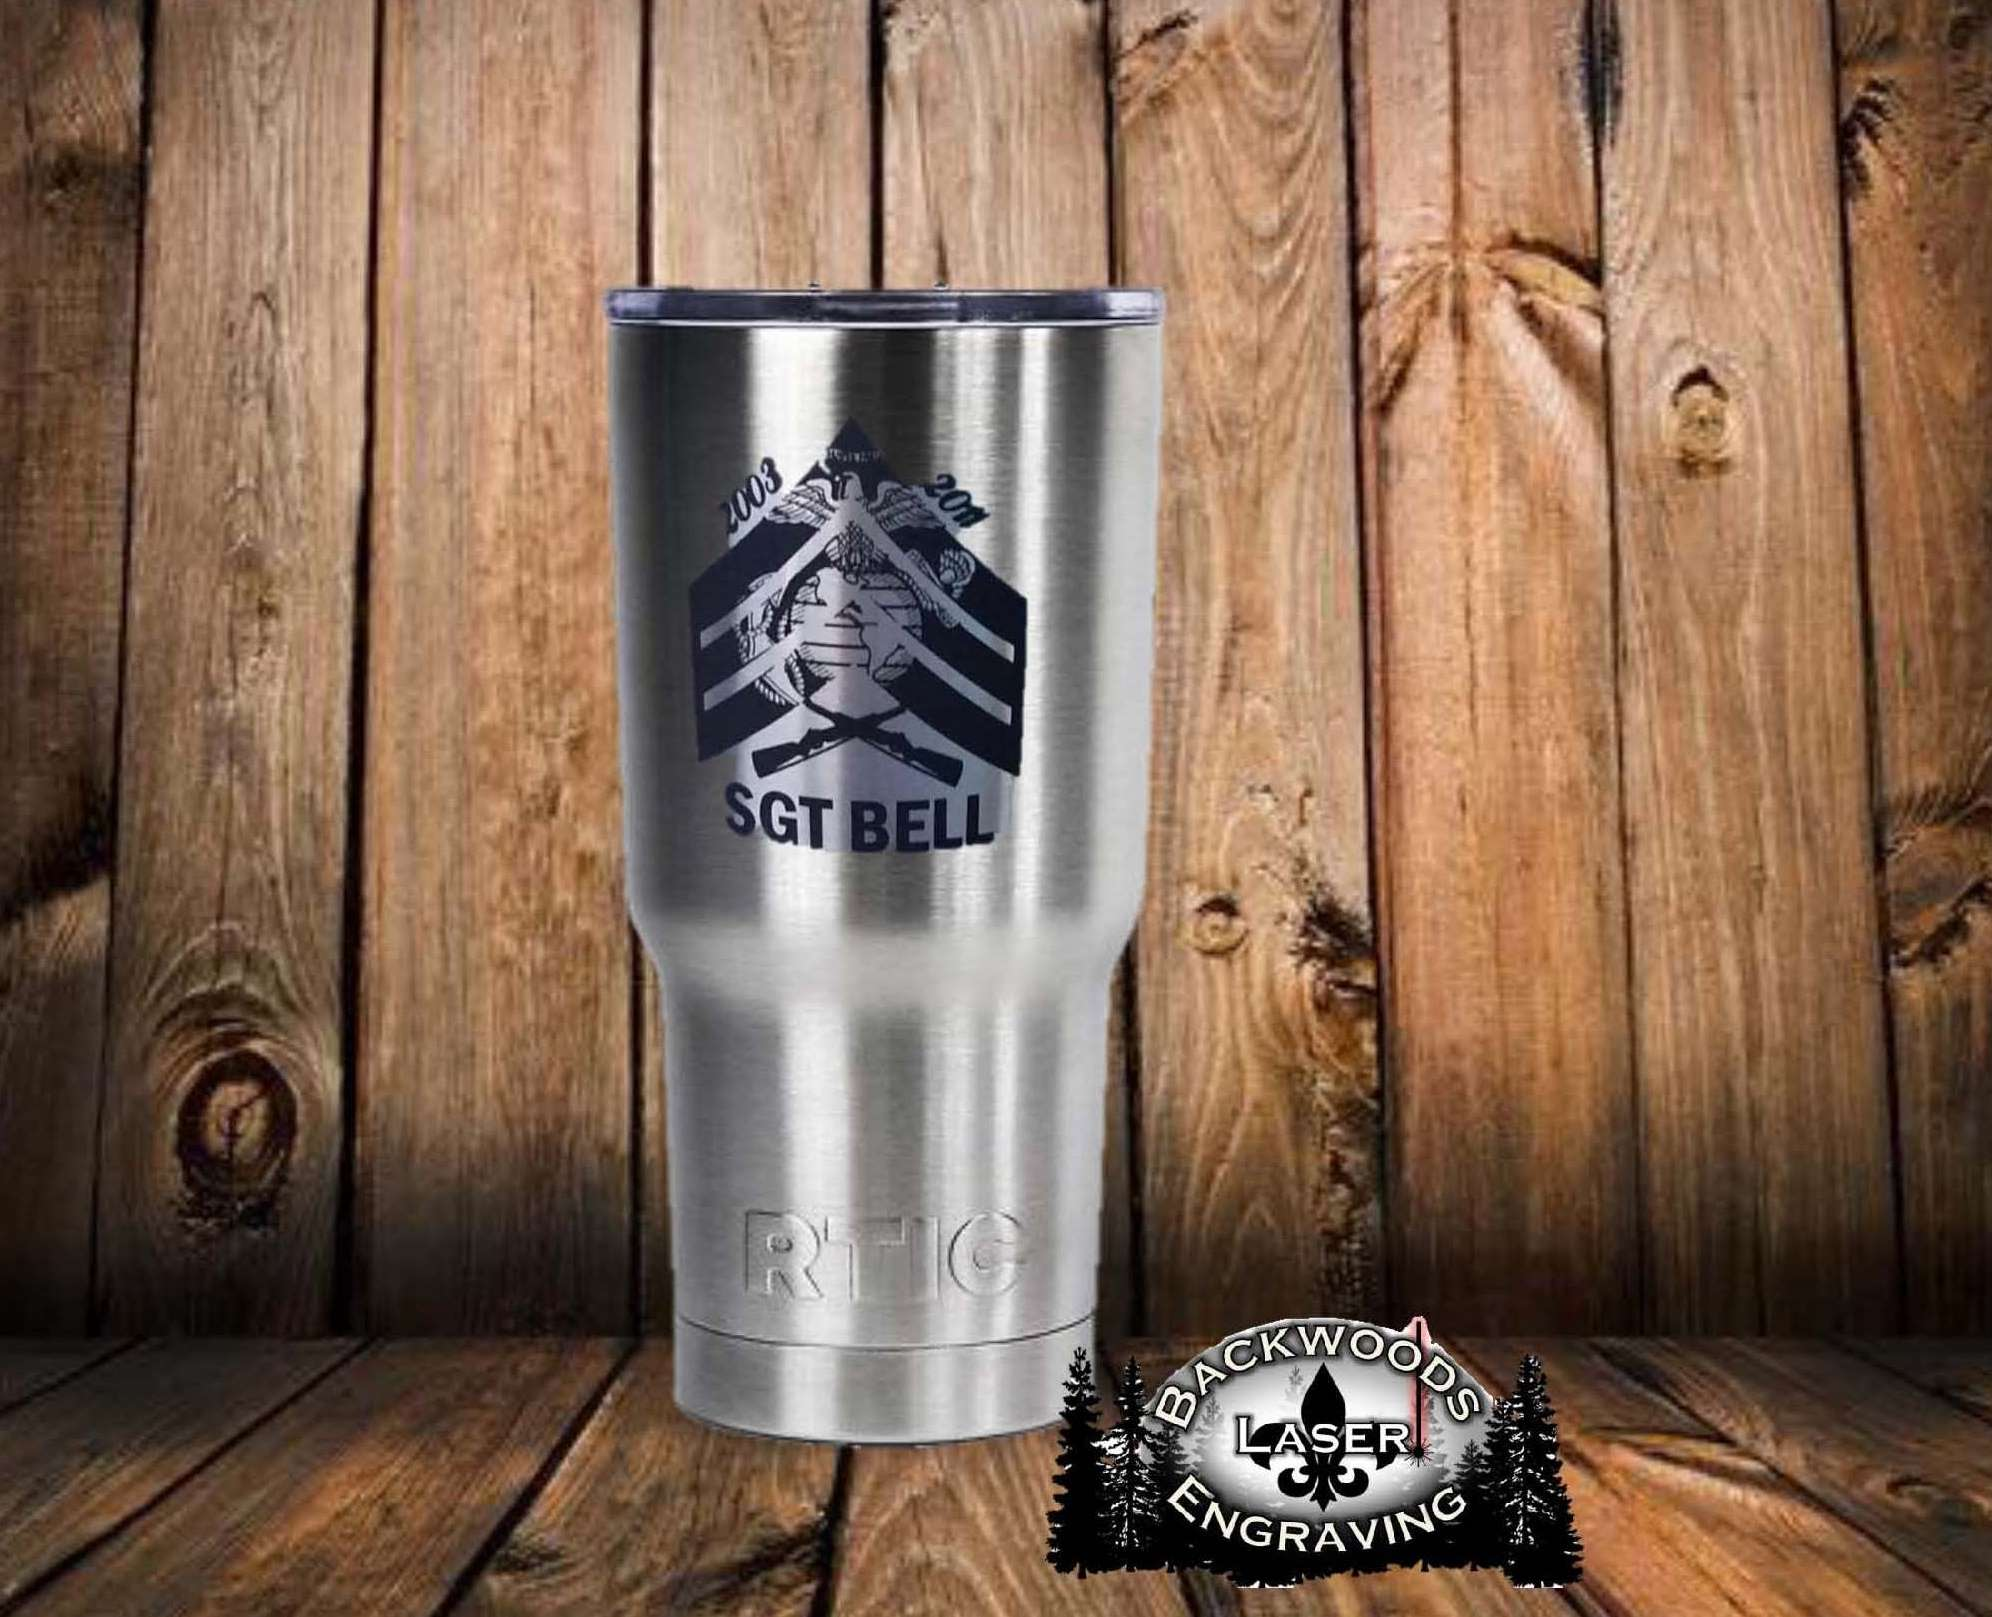 Custom Engraved Rtic 20 Oz Tumbler Backwoods Laser